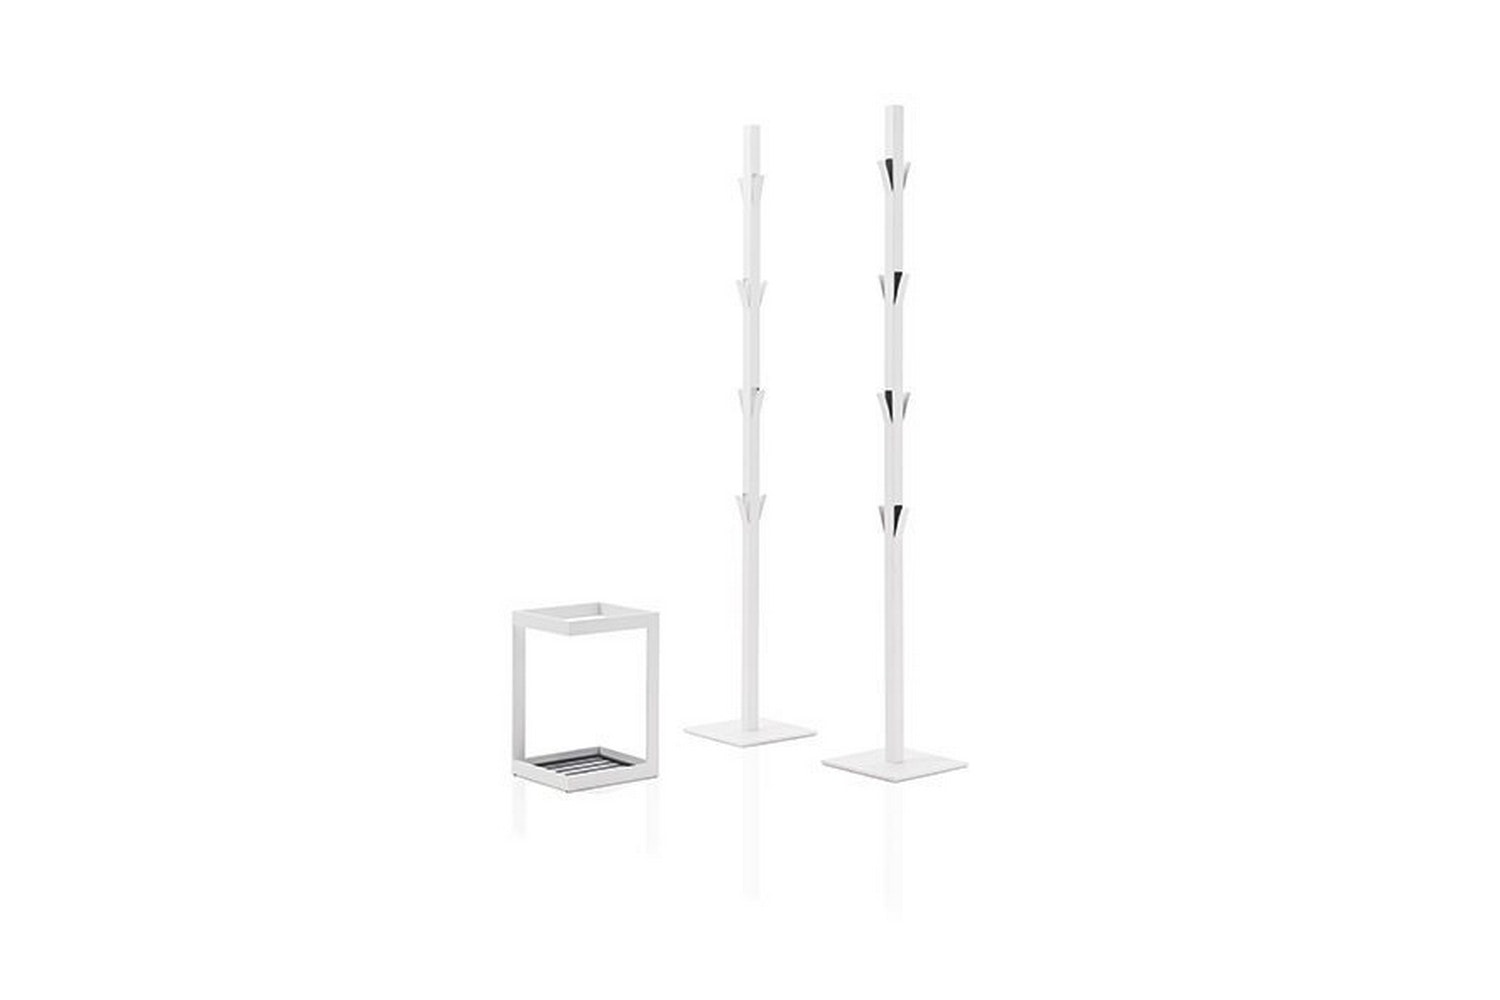 Window Coat Rack and Umbrella Stand by Vincent van Duysen for Viccarbe